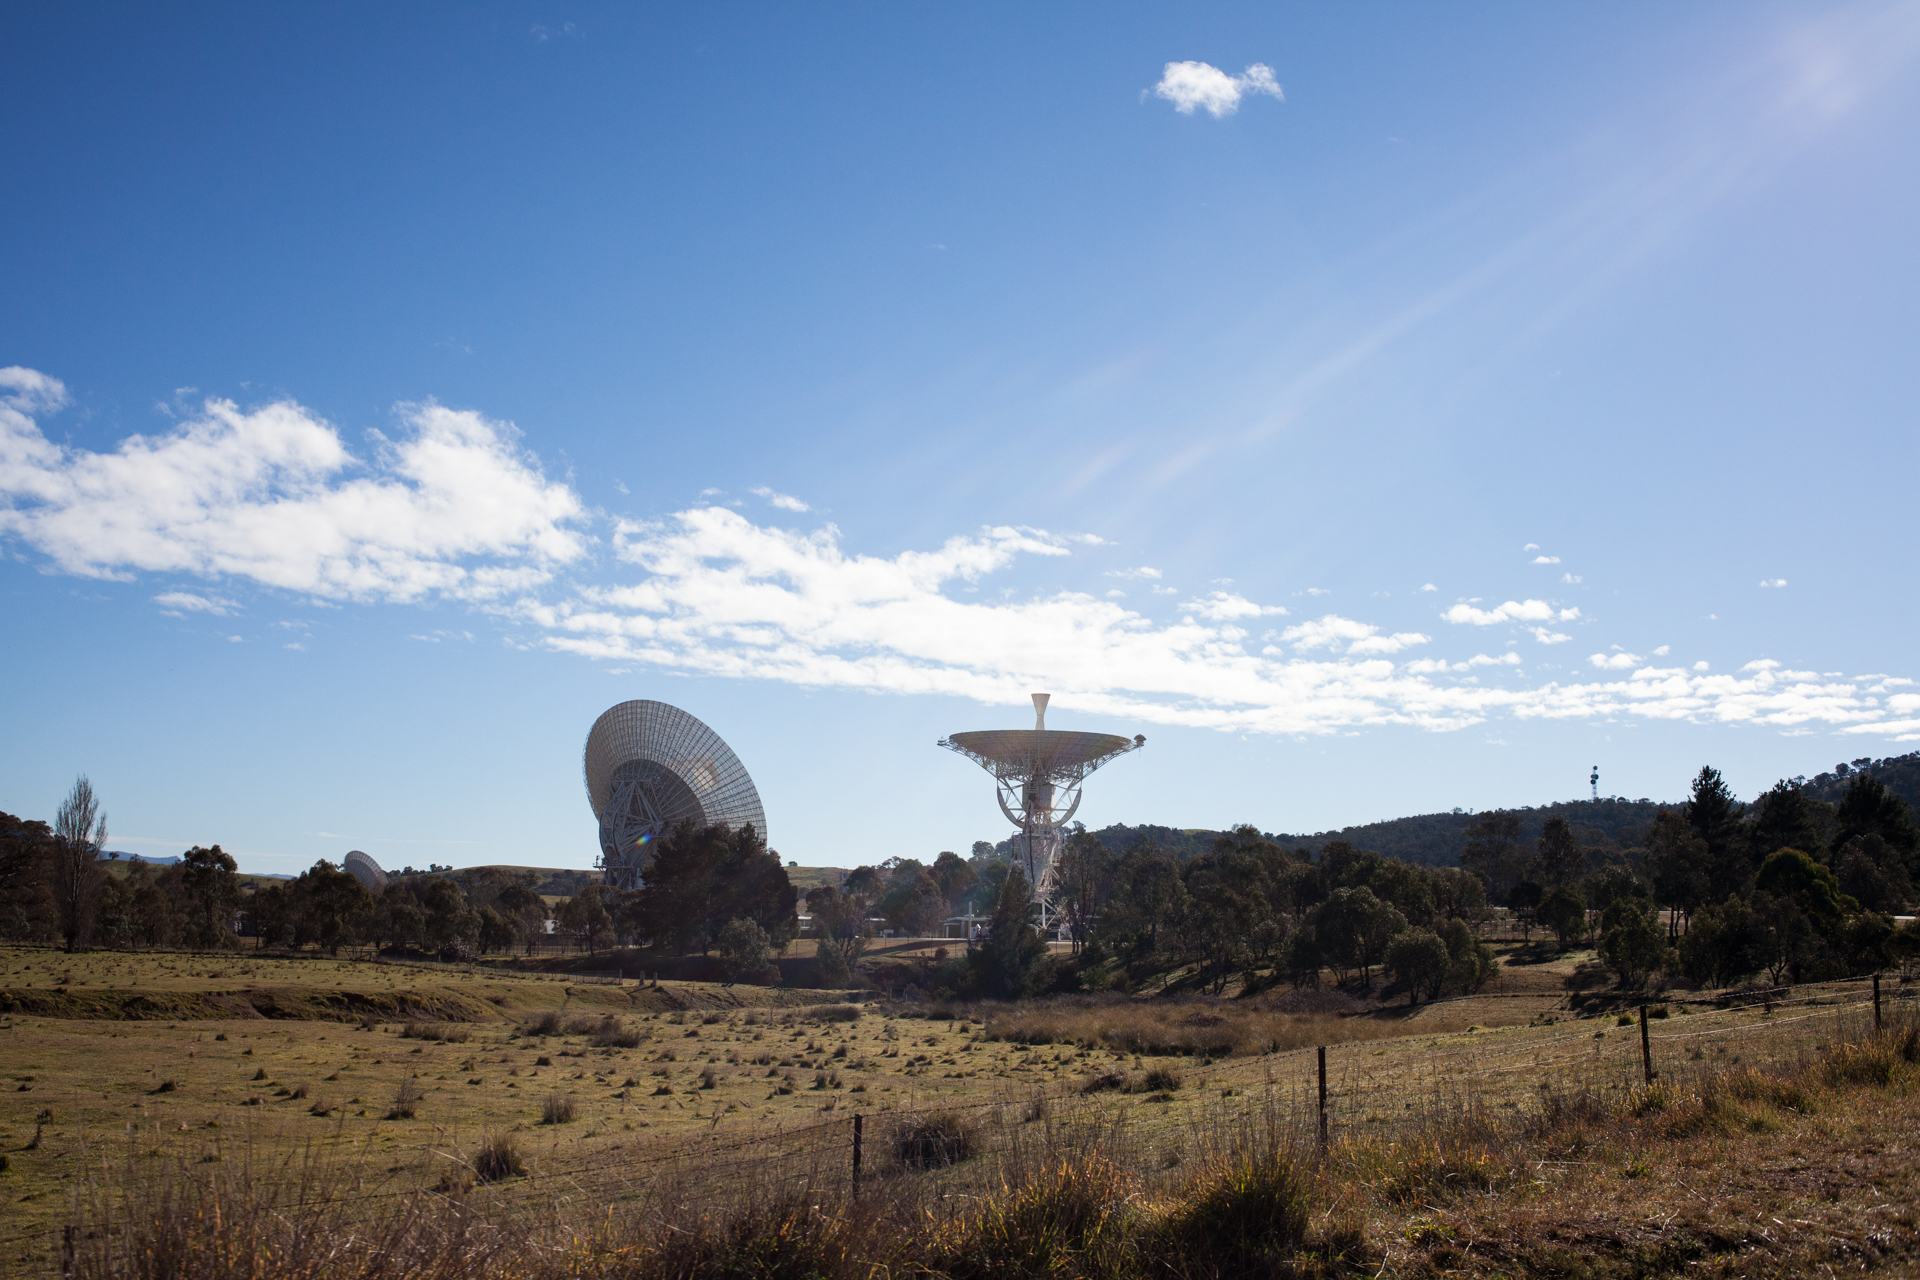 Yes, this is NASA. A station for communication with the outer space.